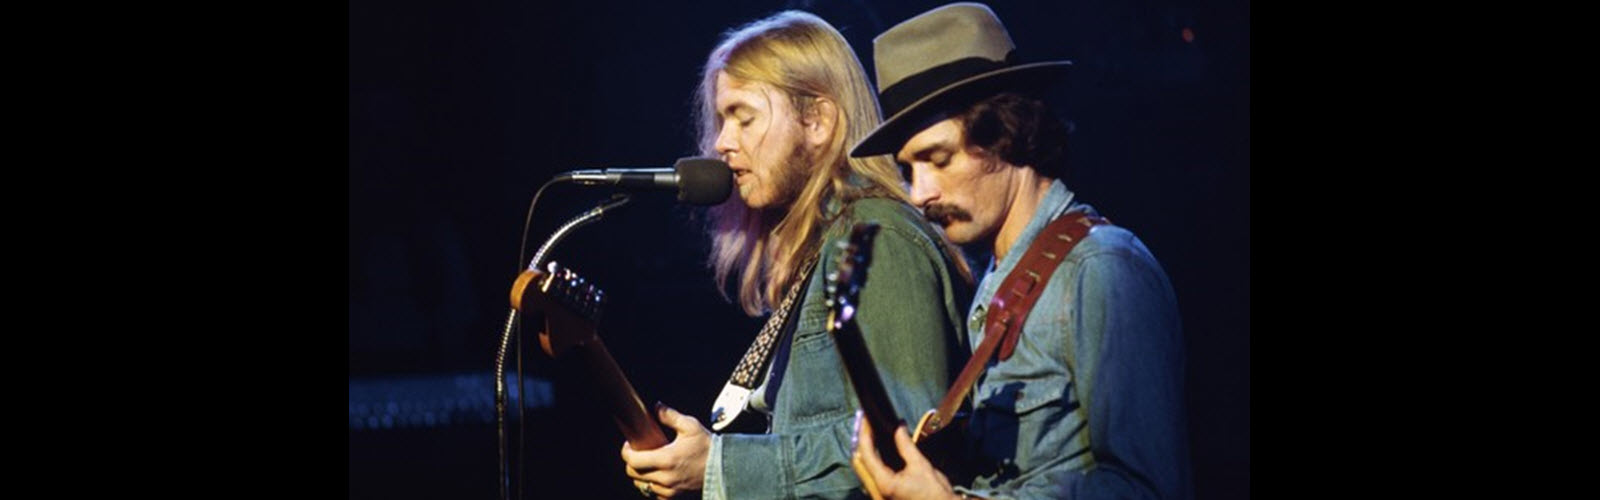 Gregg Allman and Dickey Betts